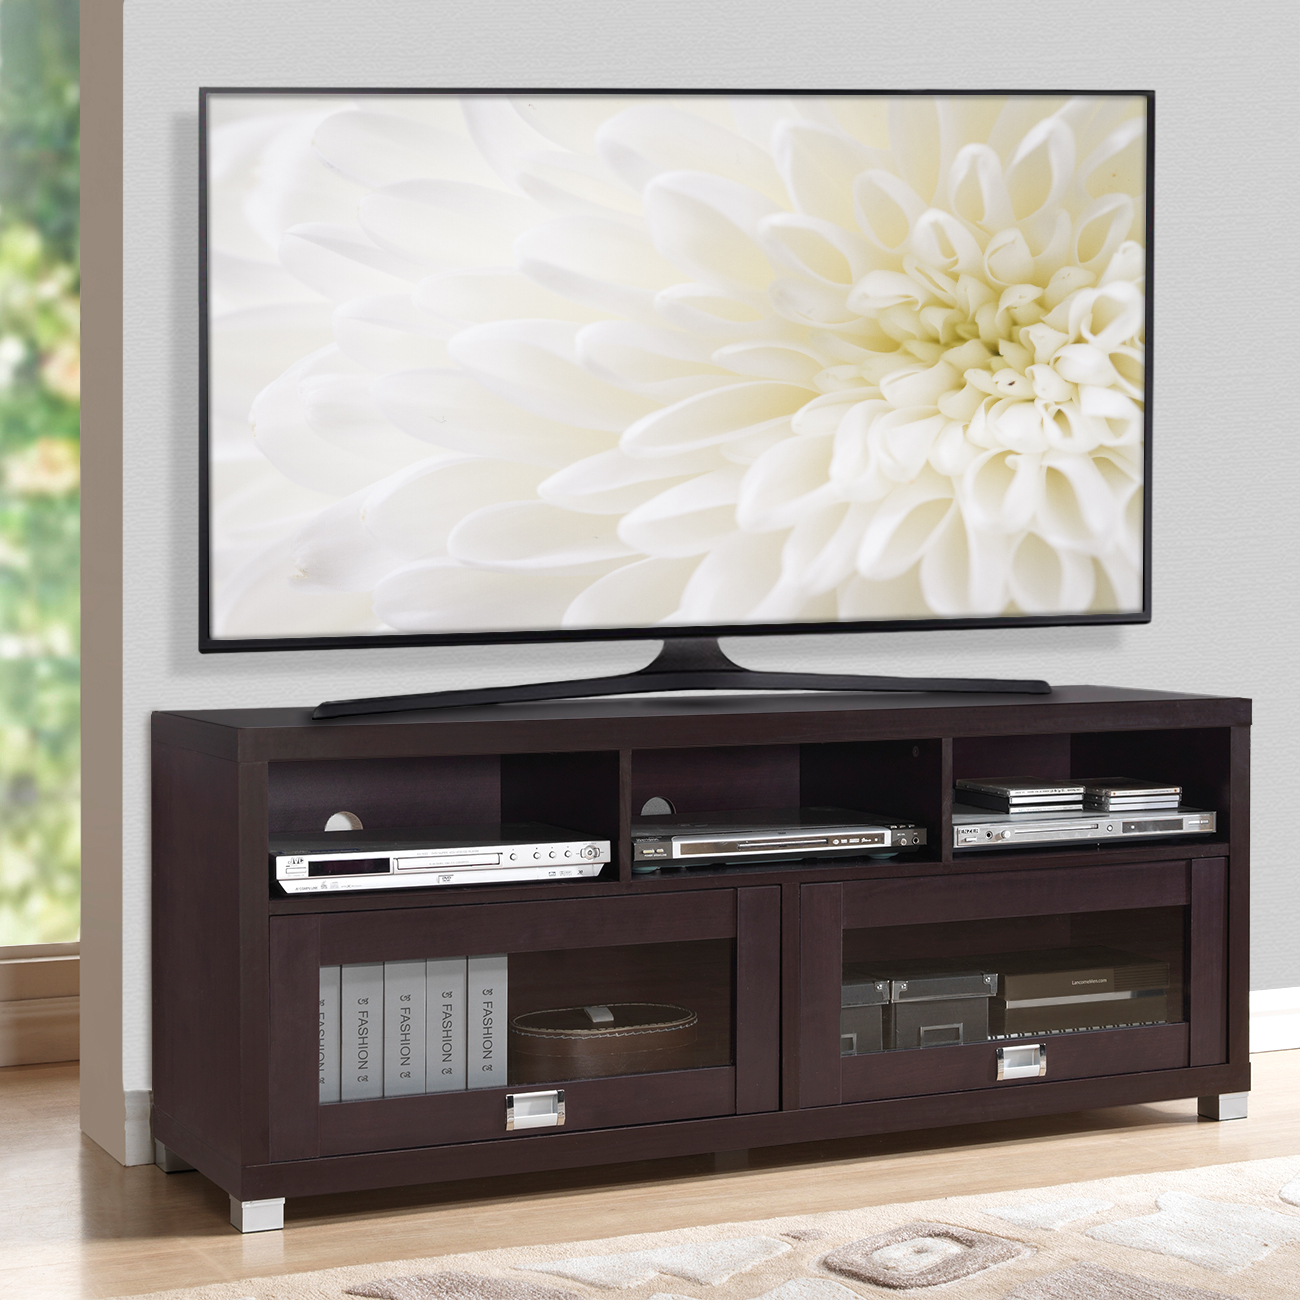 Modern Tv Stand 75 Flat Screen Console Large Storage Entertainment